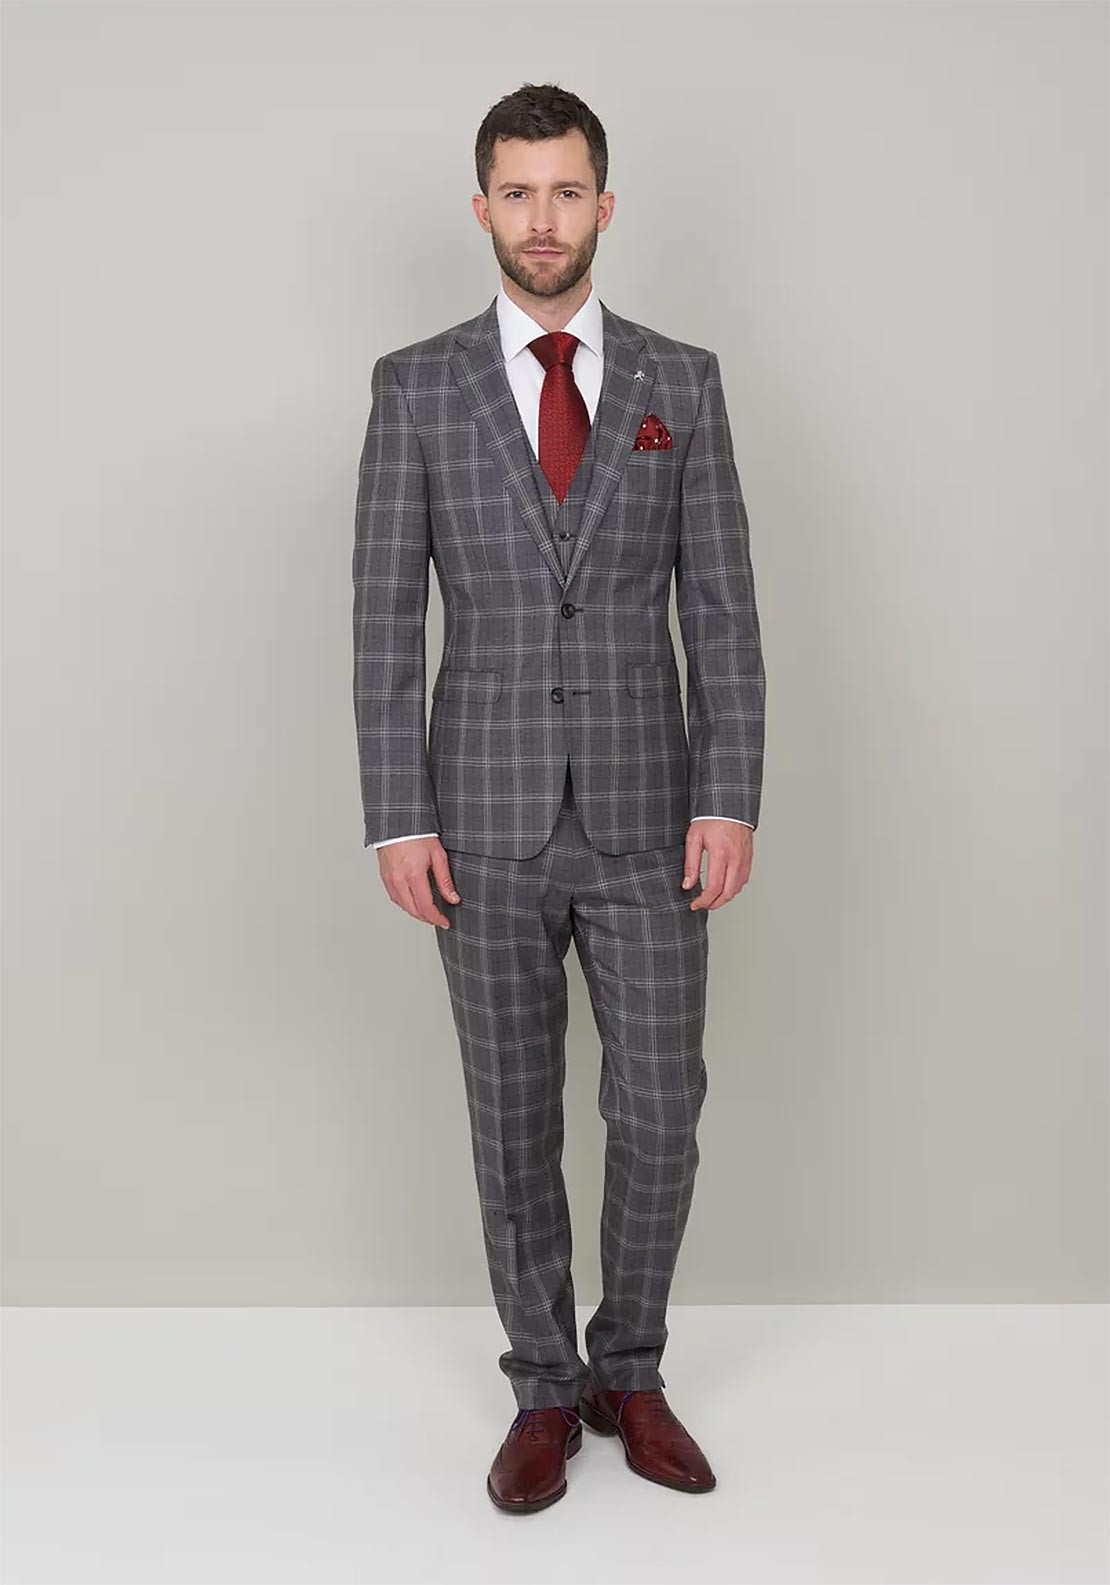 Herbie Frogg Grey Check 3-Piece suit | McElhinneys | McElhinneys